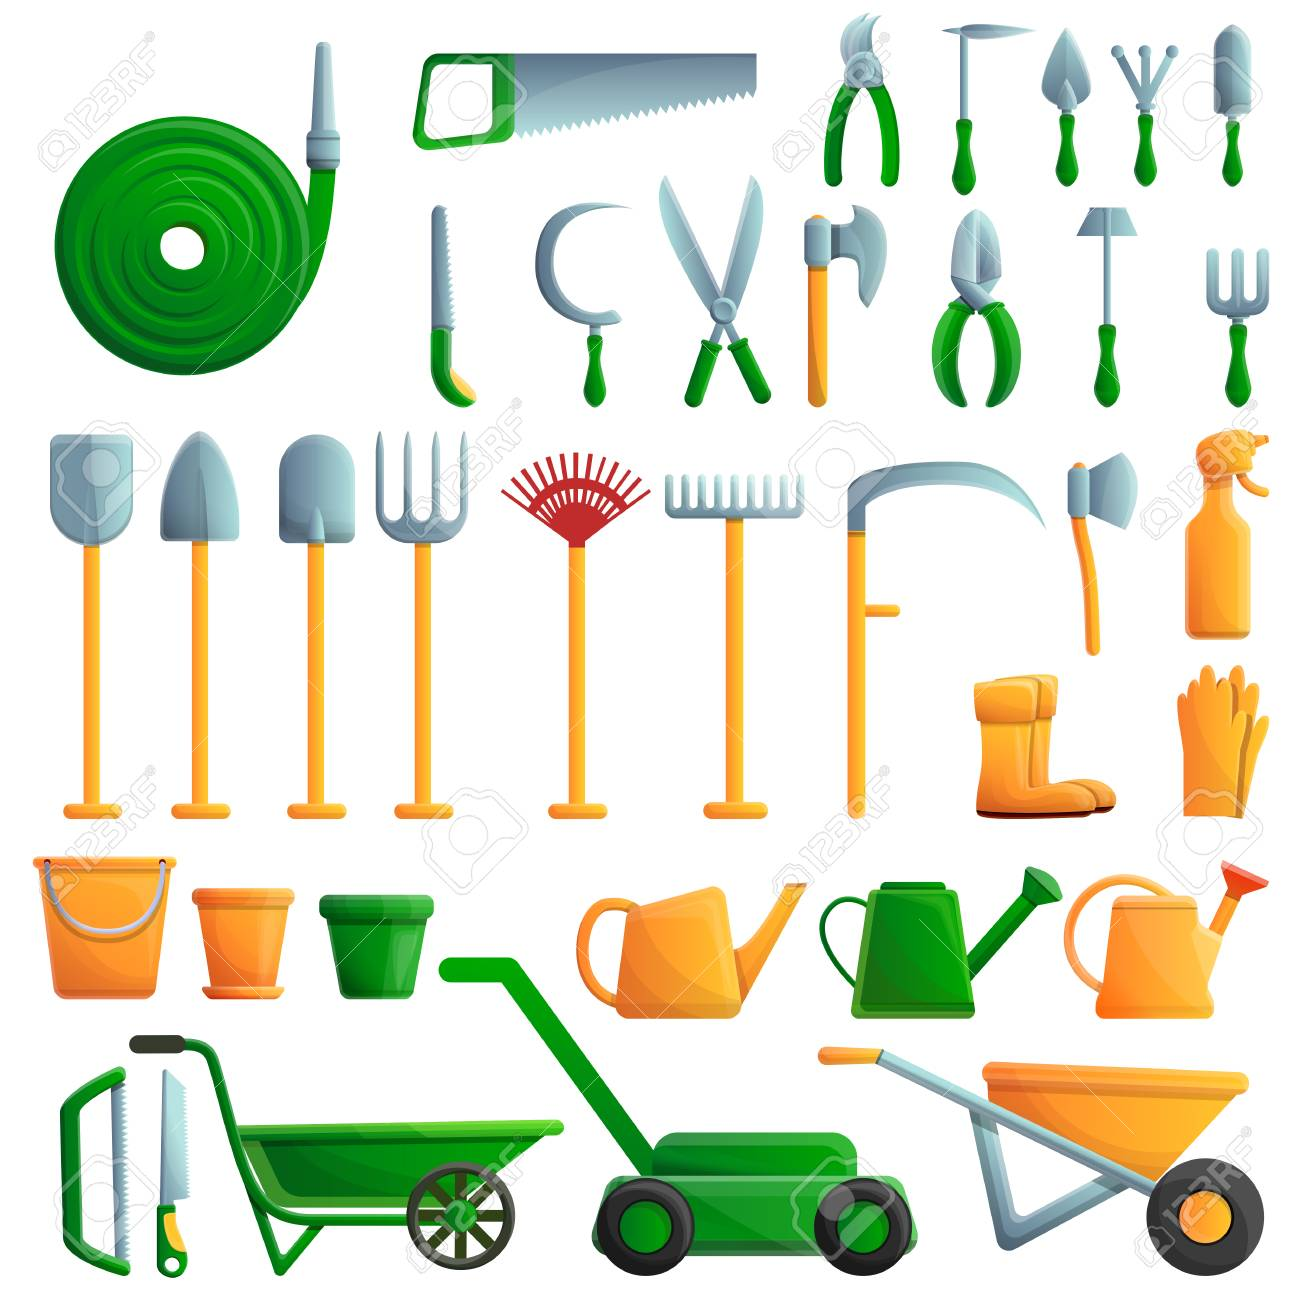 Gardening Tools Icons Set Cartoon Set Of Gardening Tools Vector Royalty Free Cliparts Vectors And Stock Illustration Image 125312687